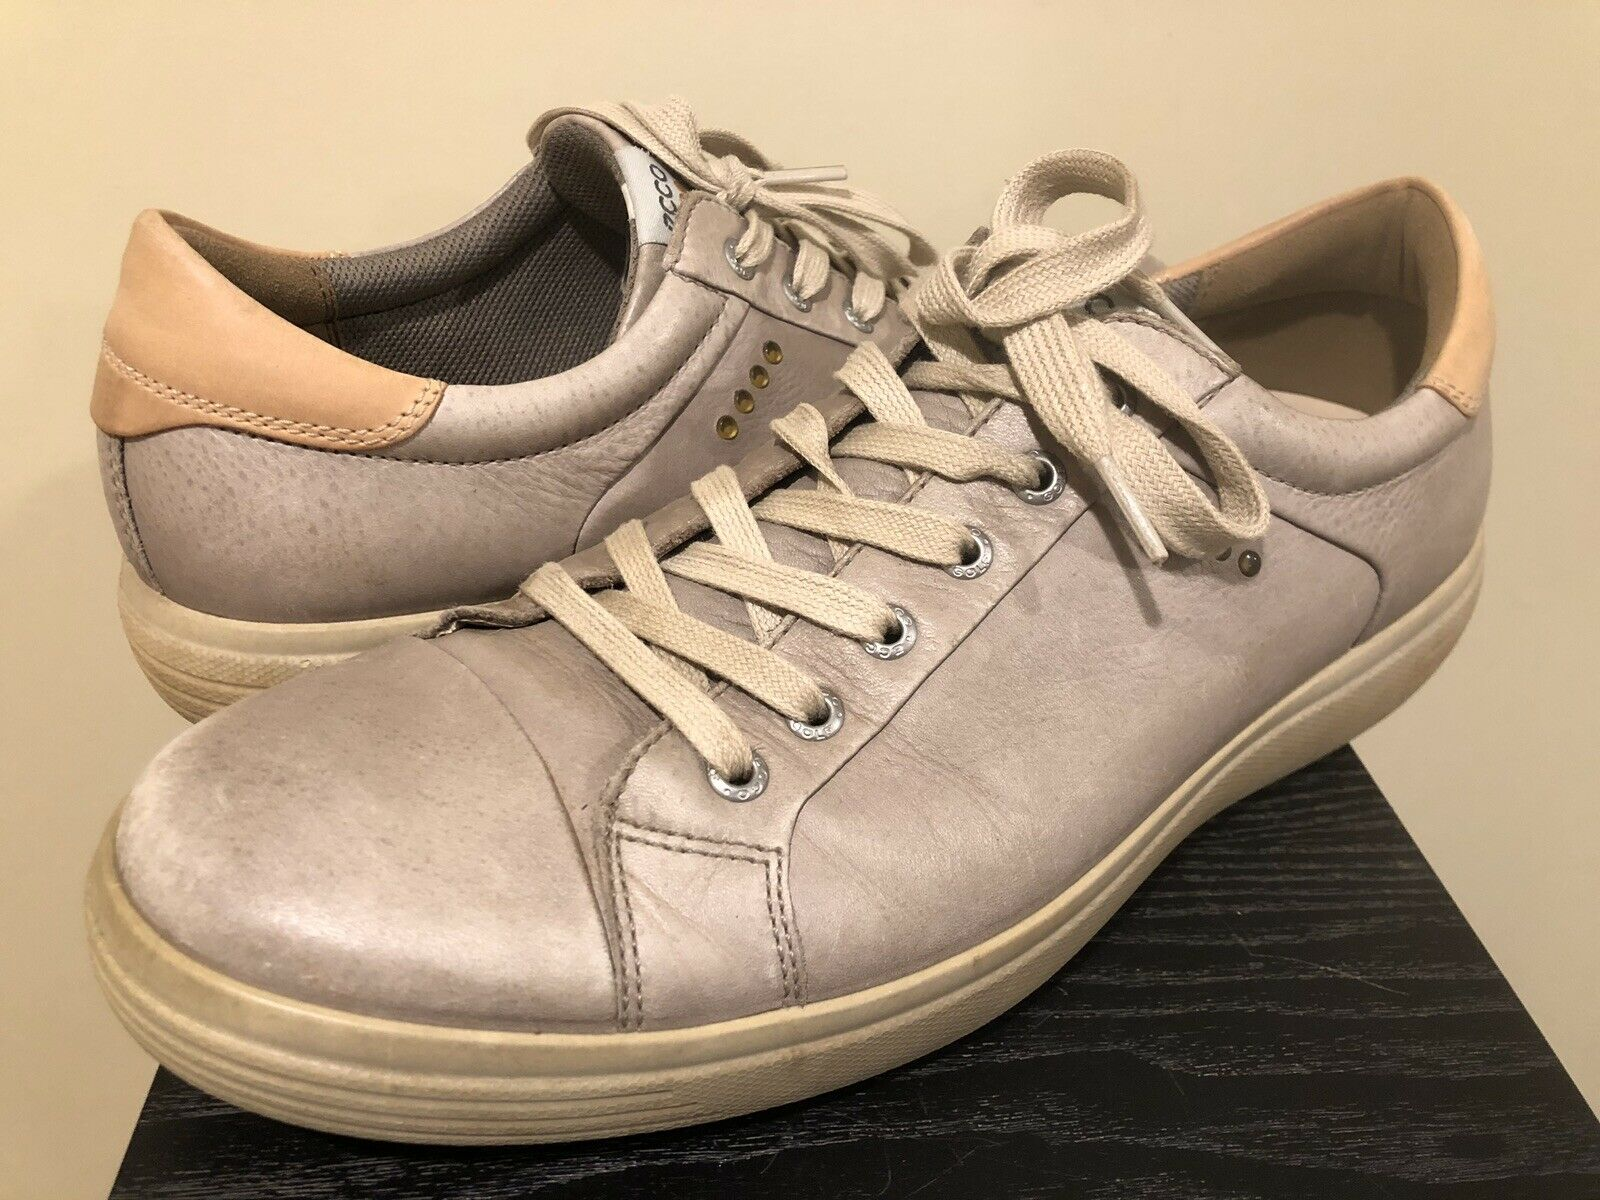 ECCO Extra Width Ivory Creme Beige Leather Oxford Sneakers shoes MENS 45 Fashion